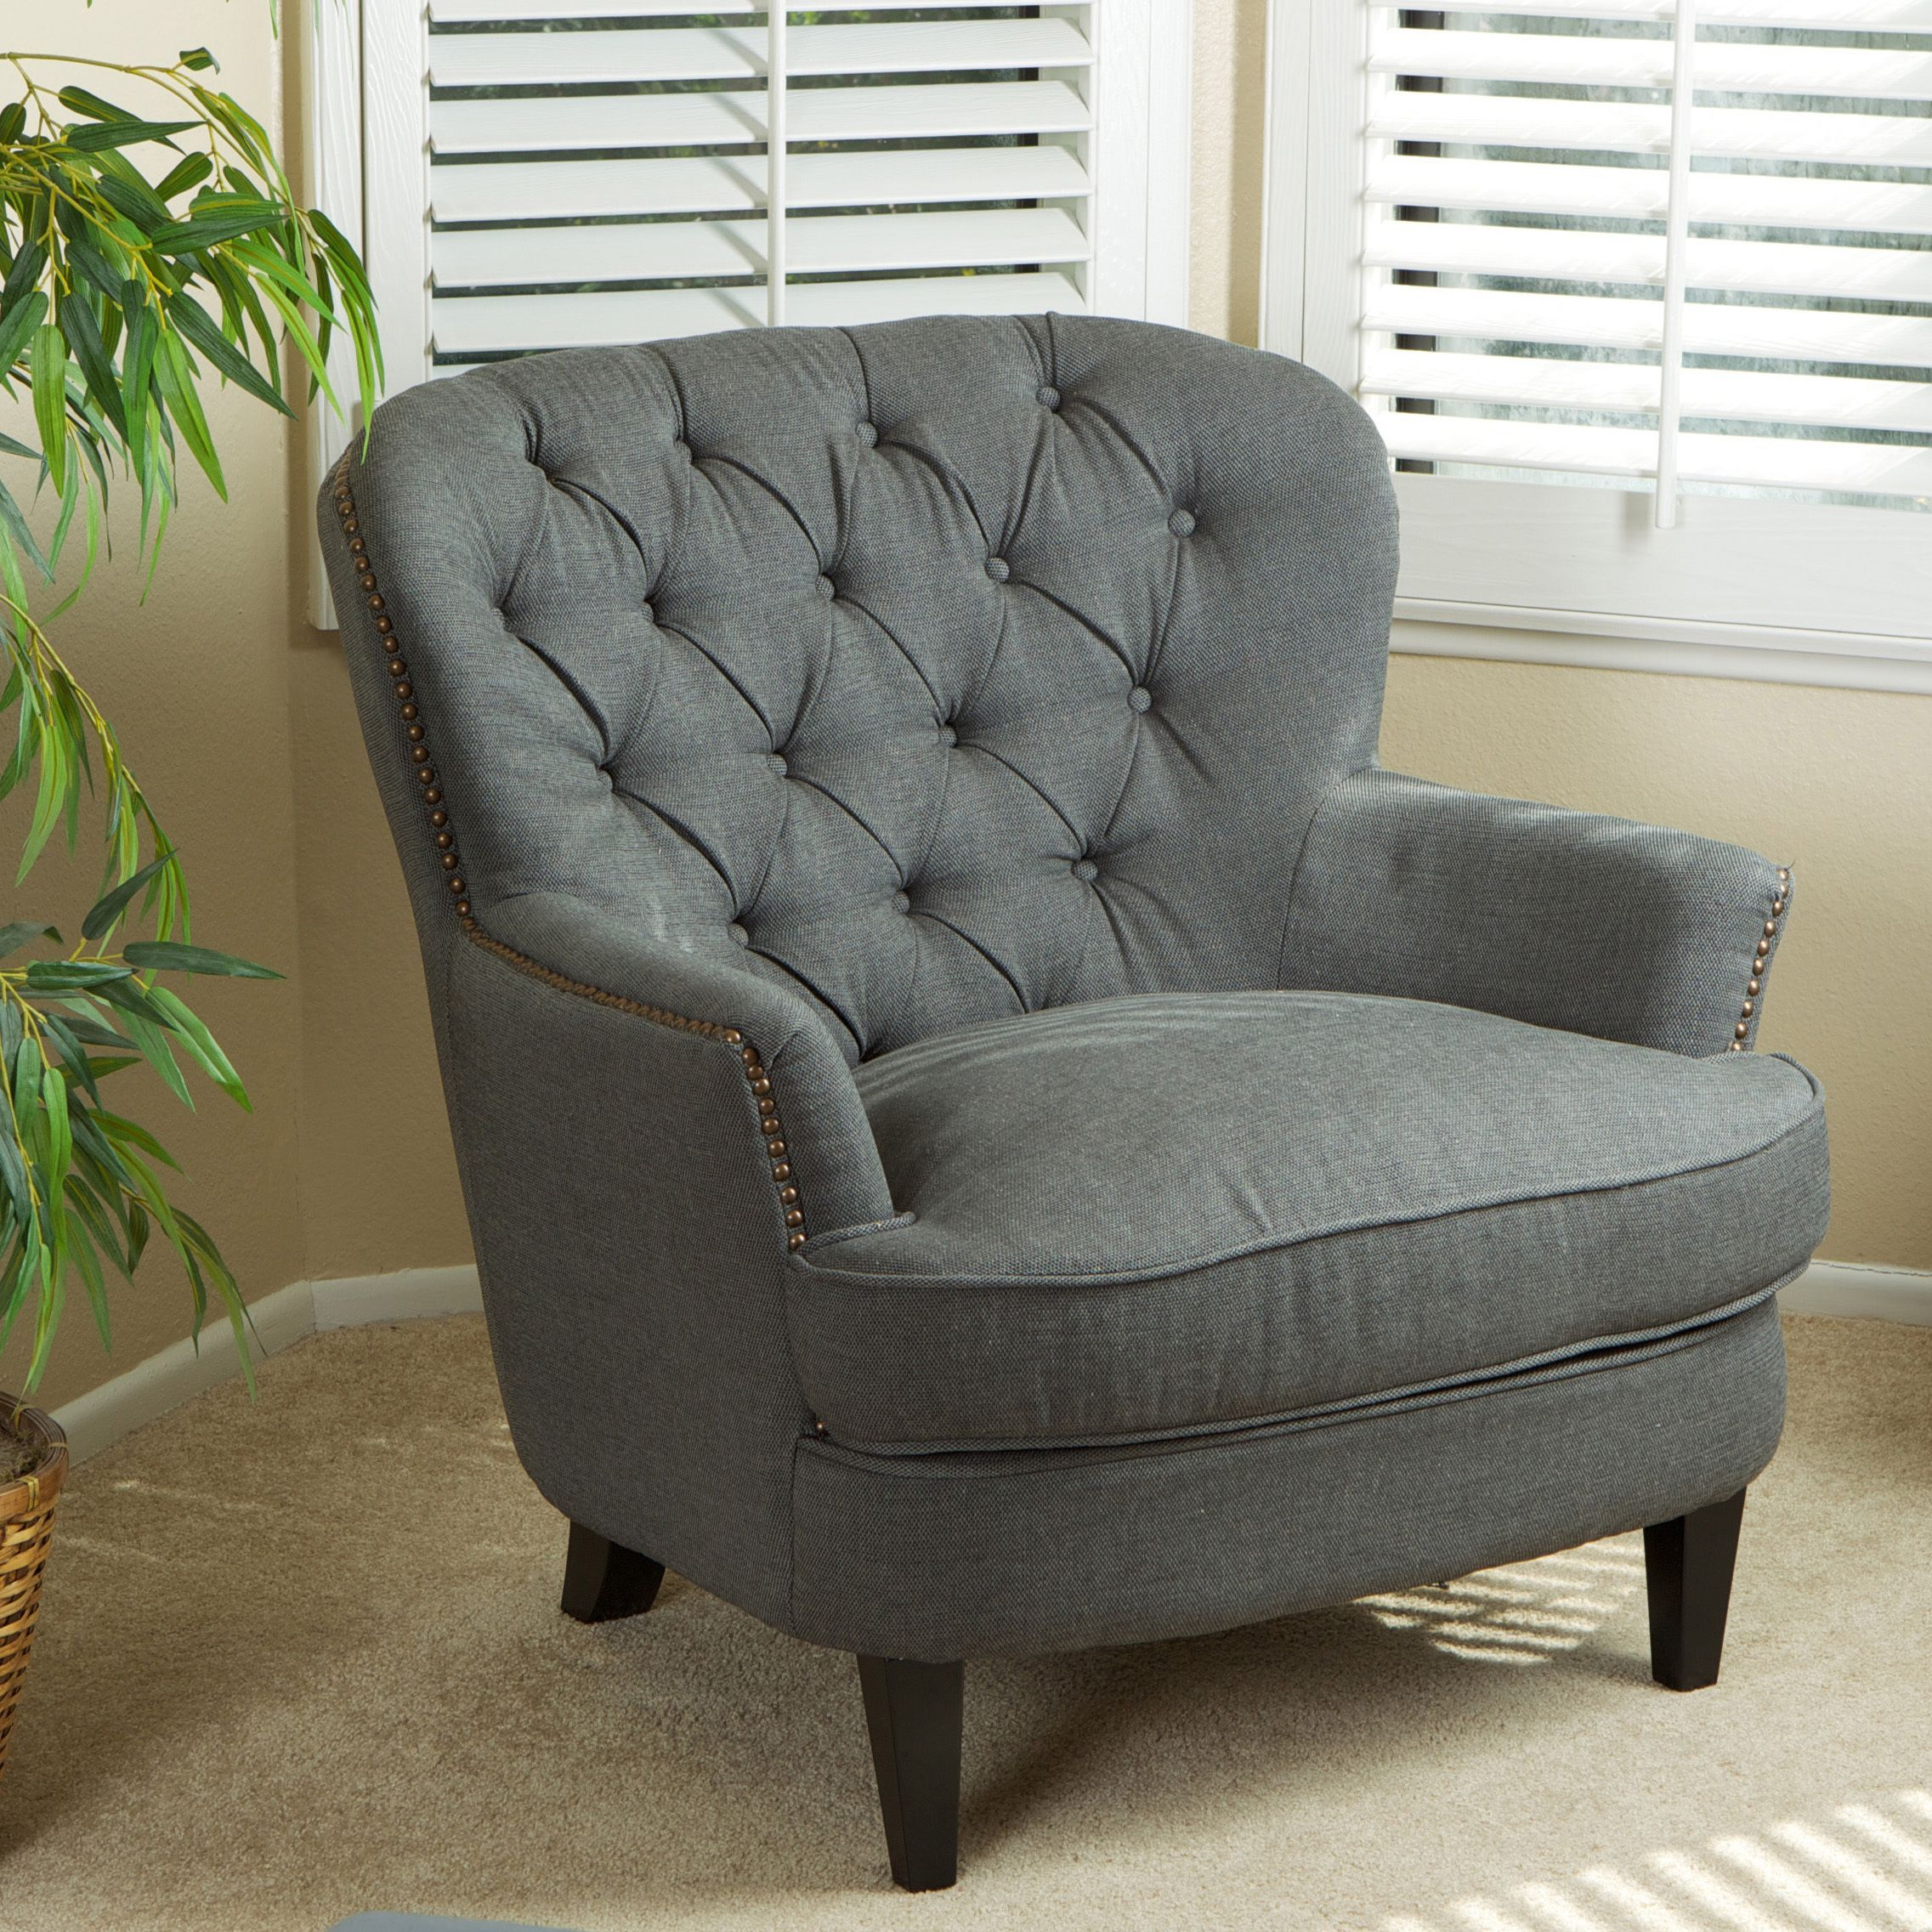 Christopher Knight Home Tafton Tufted Grey Fabric Club Chair ...